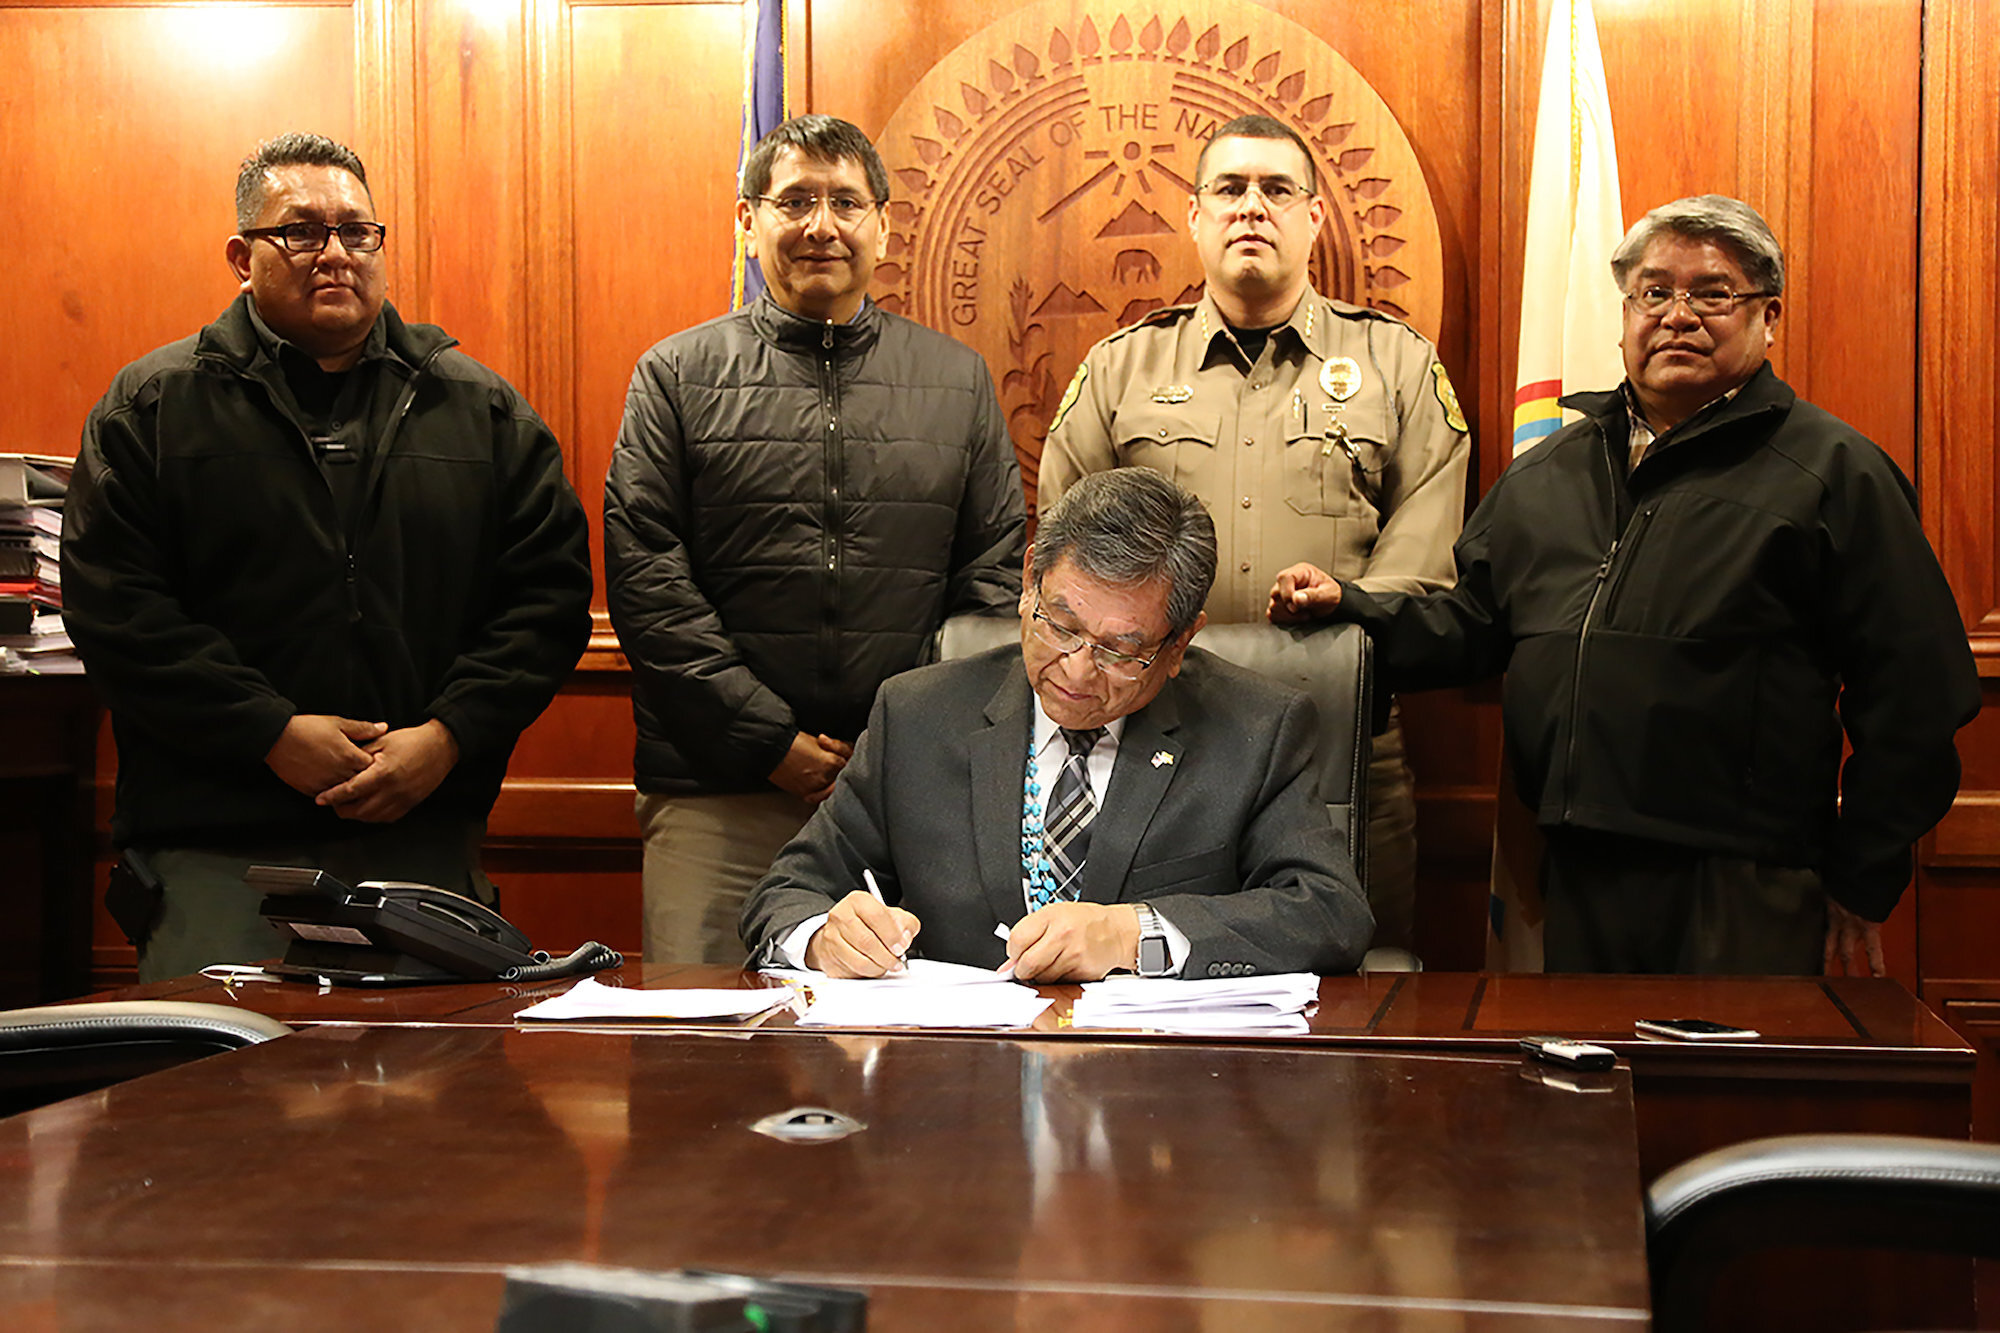 Navajo Nation President Russell Begaye is joined by NDEM Director Harland Cleveland, Vice President Jonathan Nez, Chief of Police Phillip Francisco and DPS Director Jesse Delmar.